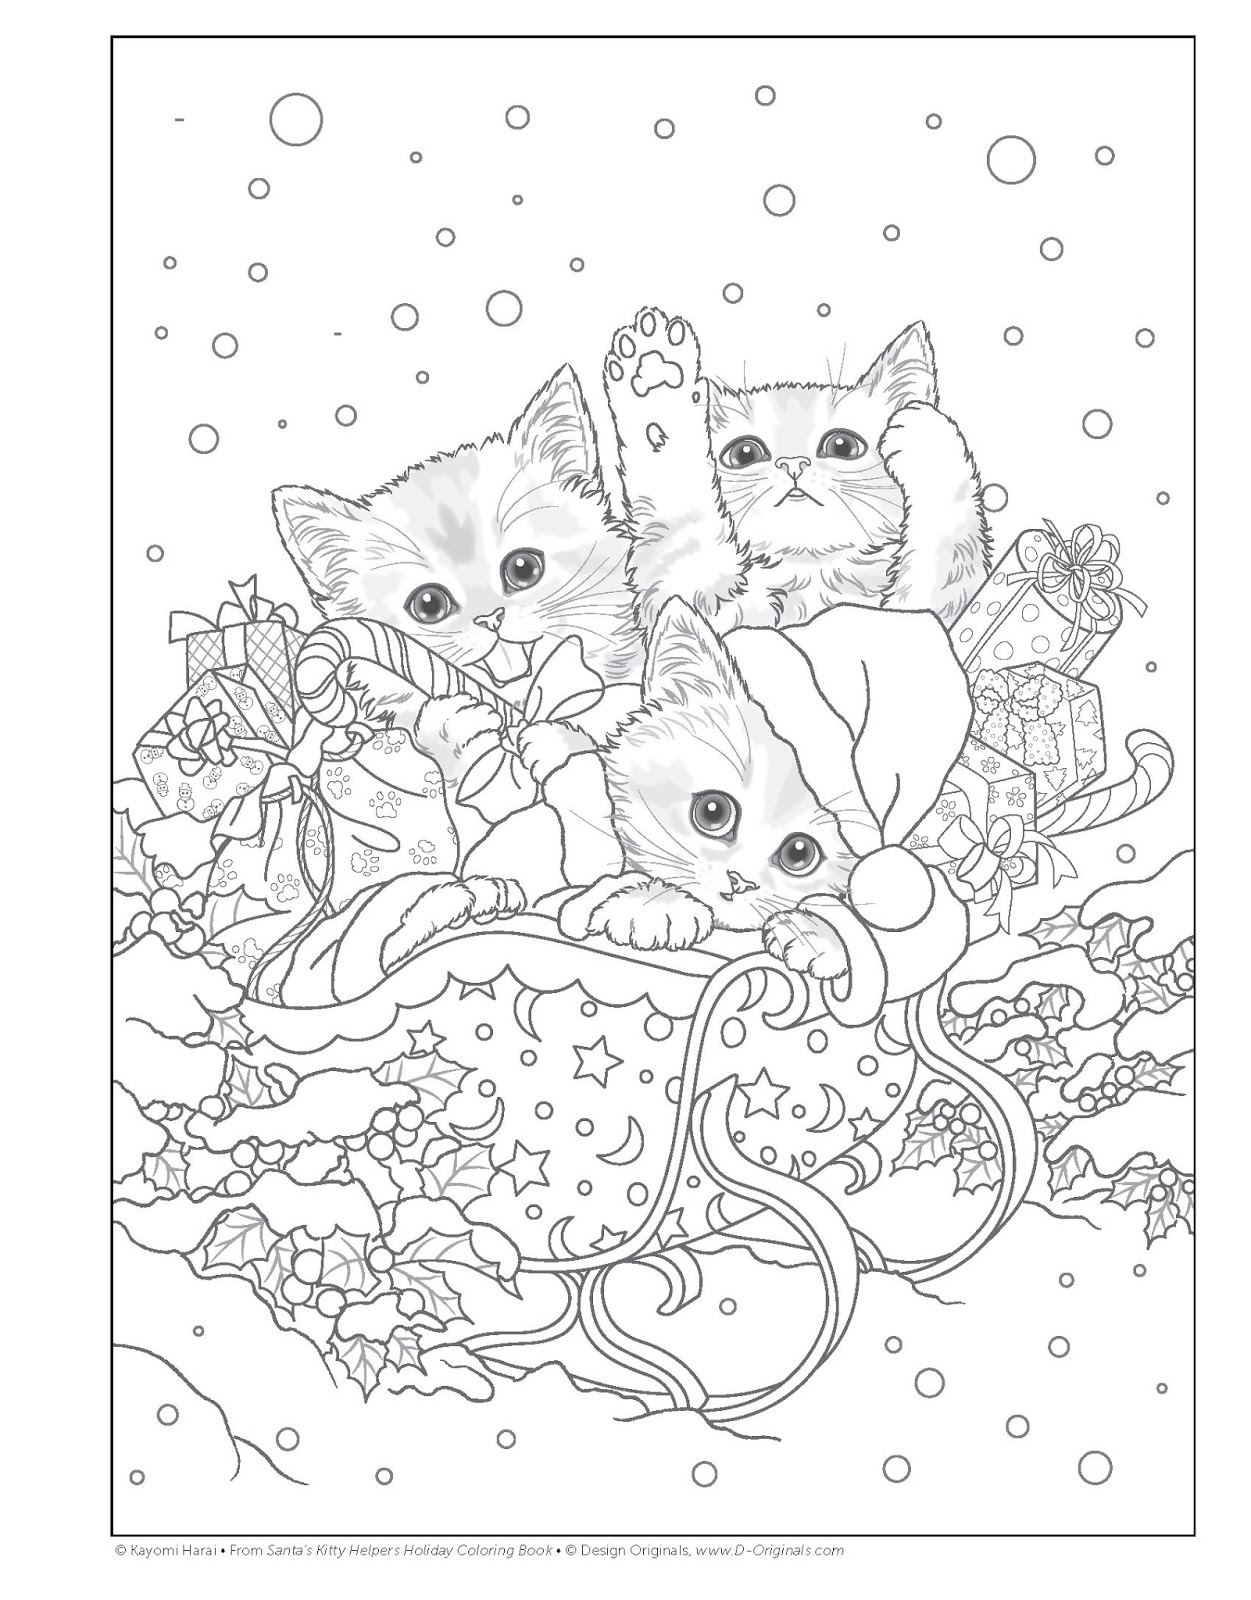 i plan to give santas kitty helpers holiday coloring book to my granddaughter as a gift for thanksgiving